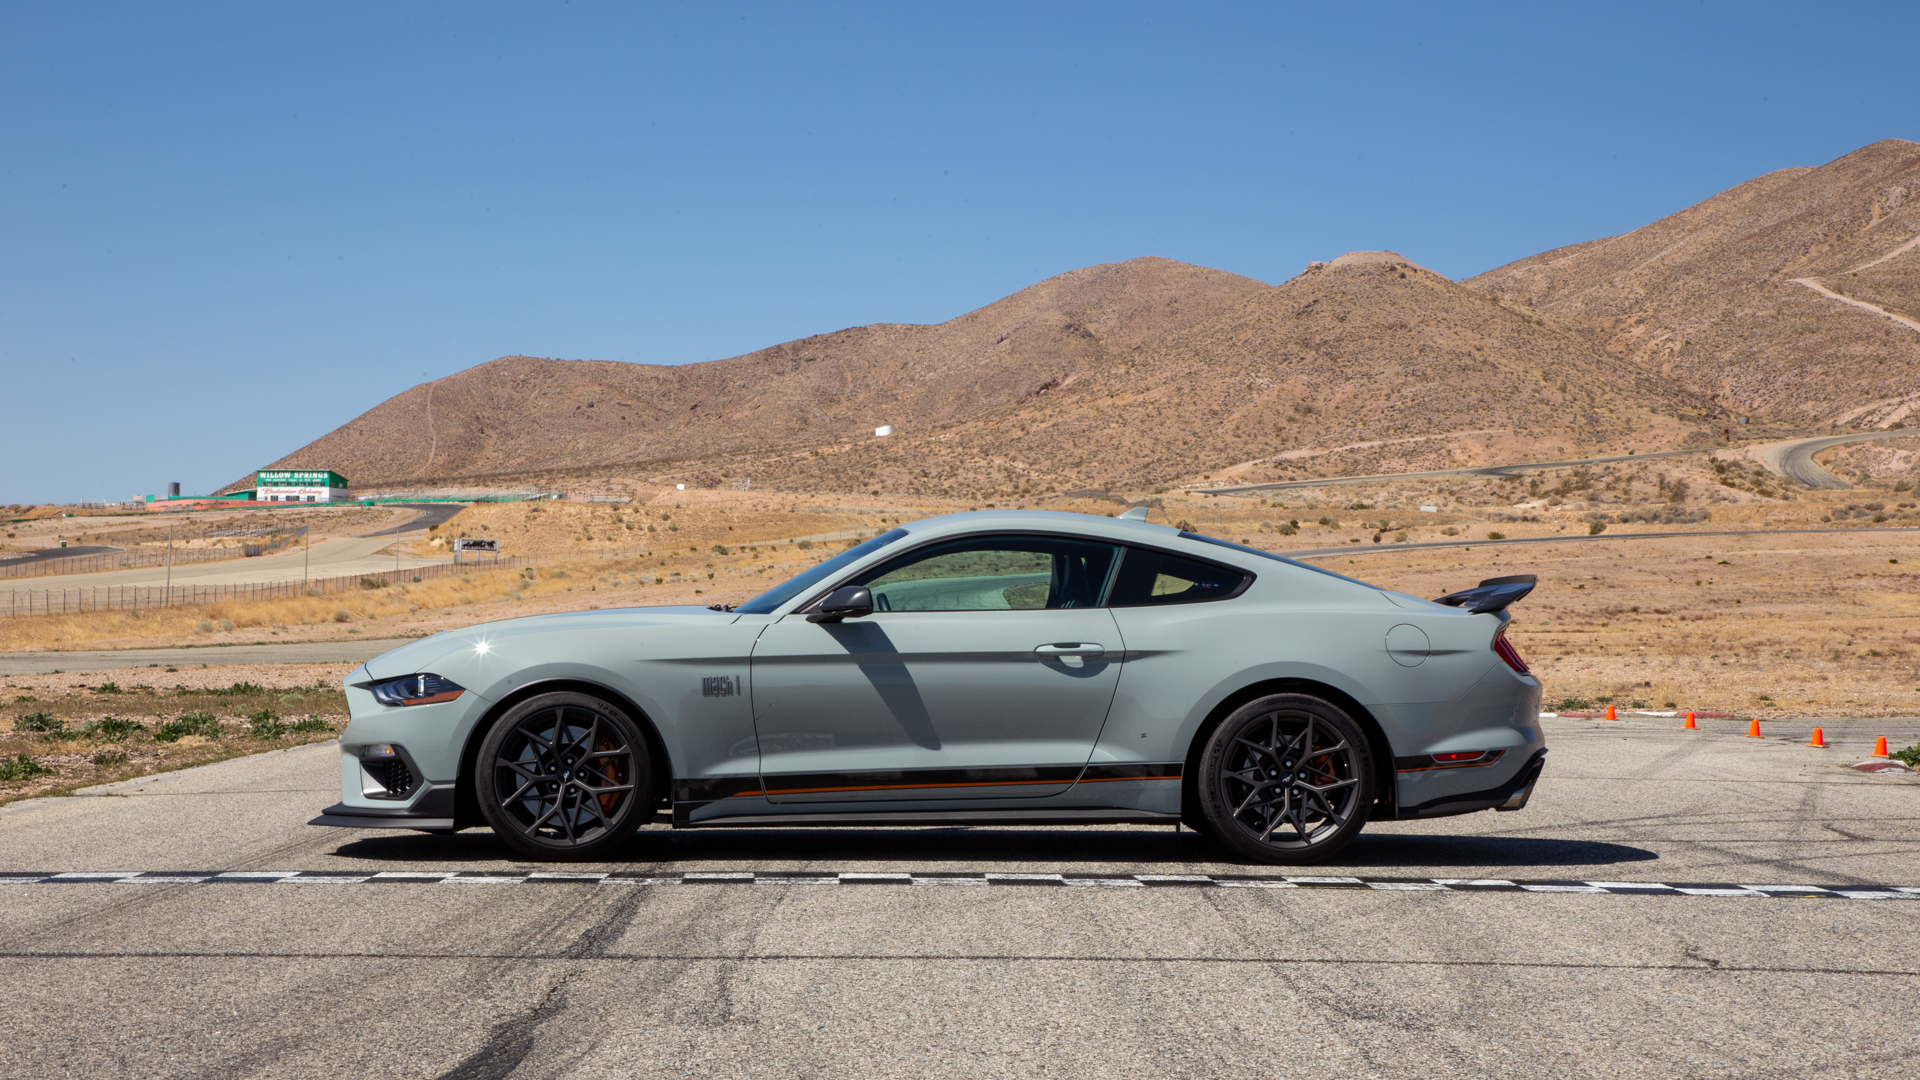 First drive review: 2021 Ford Mustang Mach 1 turns something borrowed into something new